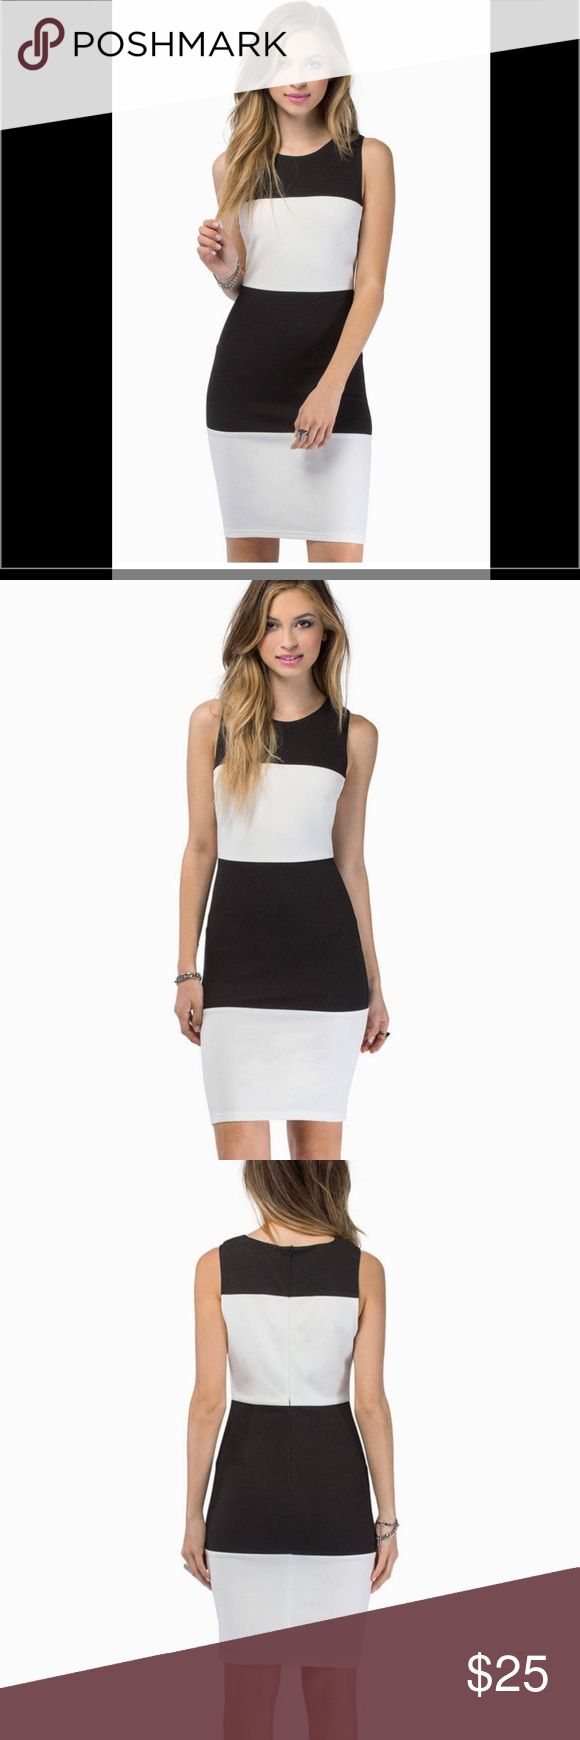 Tobi Black and White dress- brand new! Never worn, perfect for work or a night out! Tobi Dresses Midi